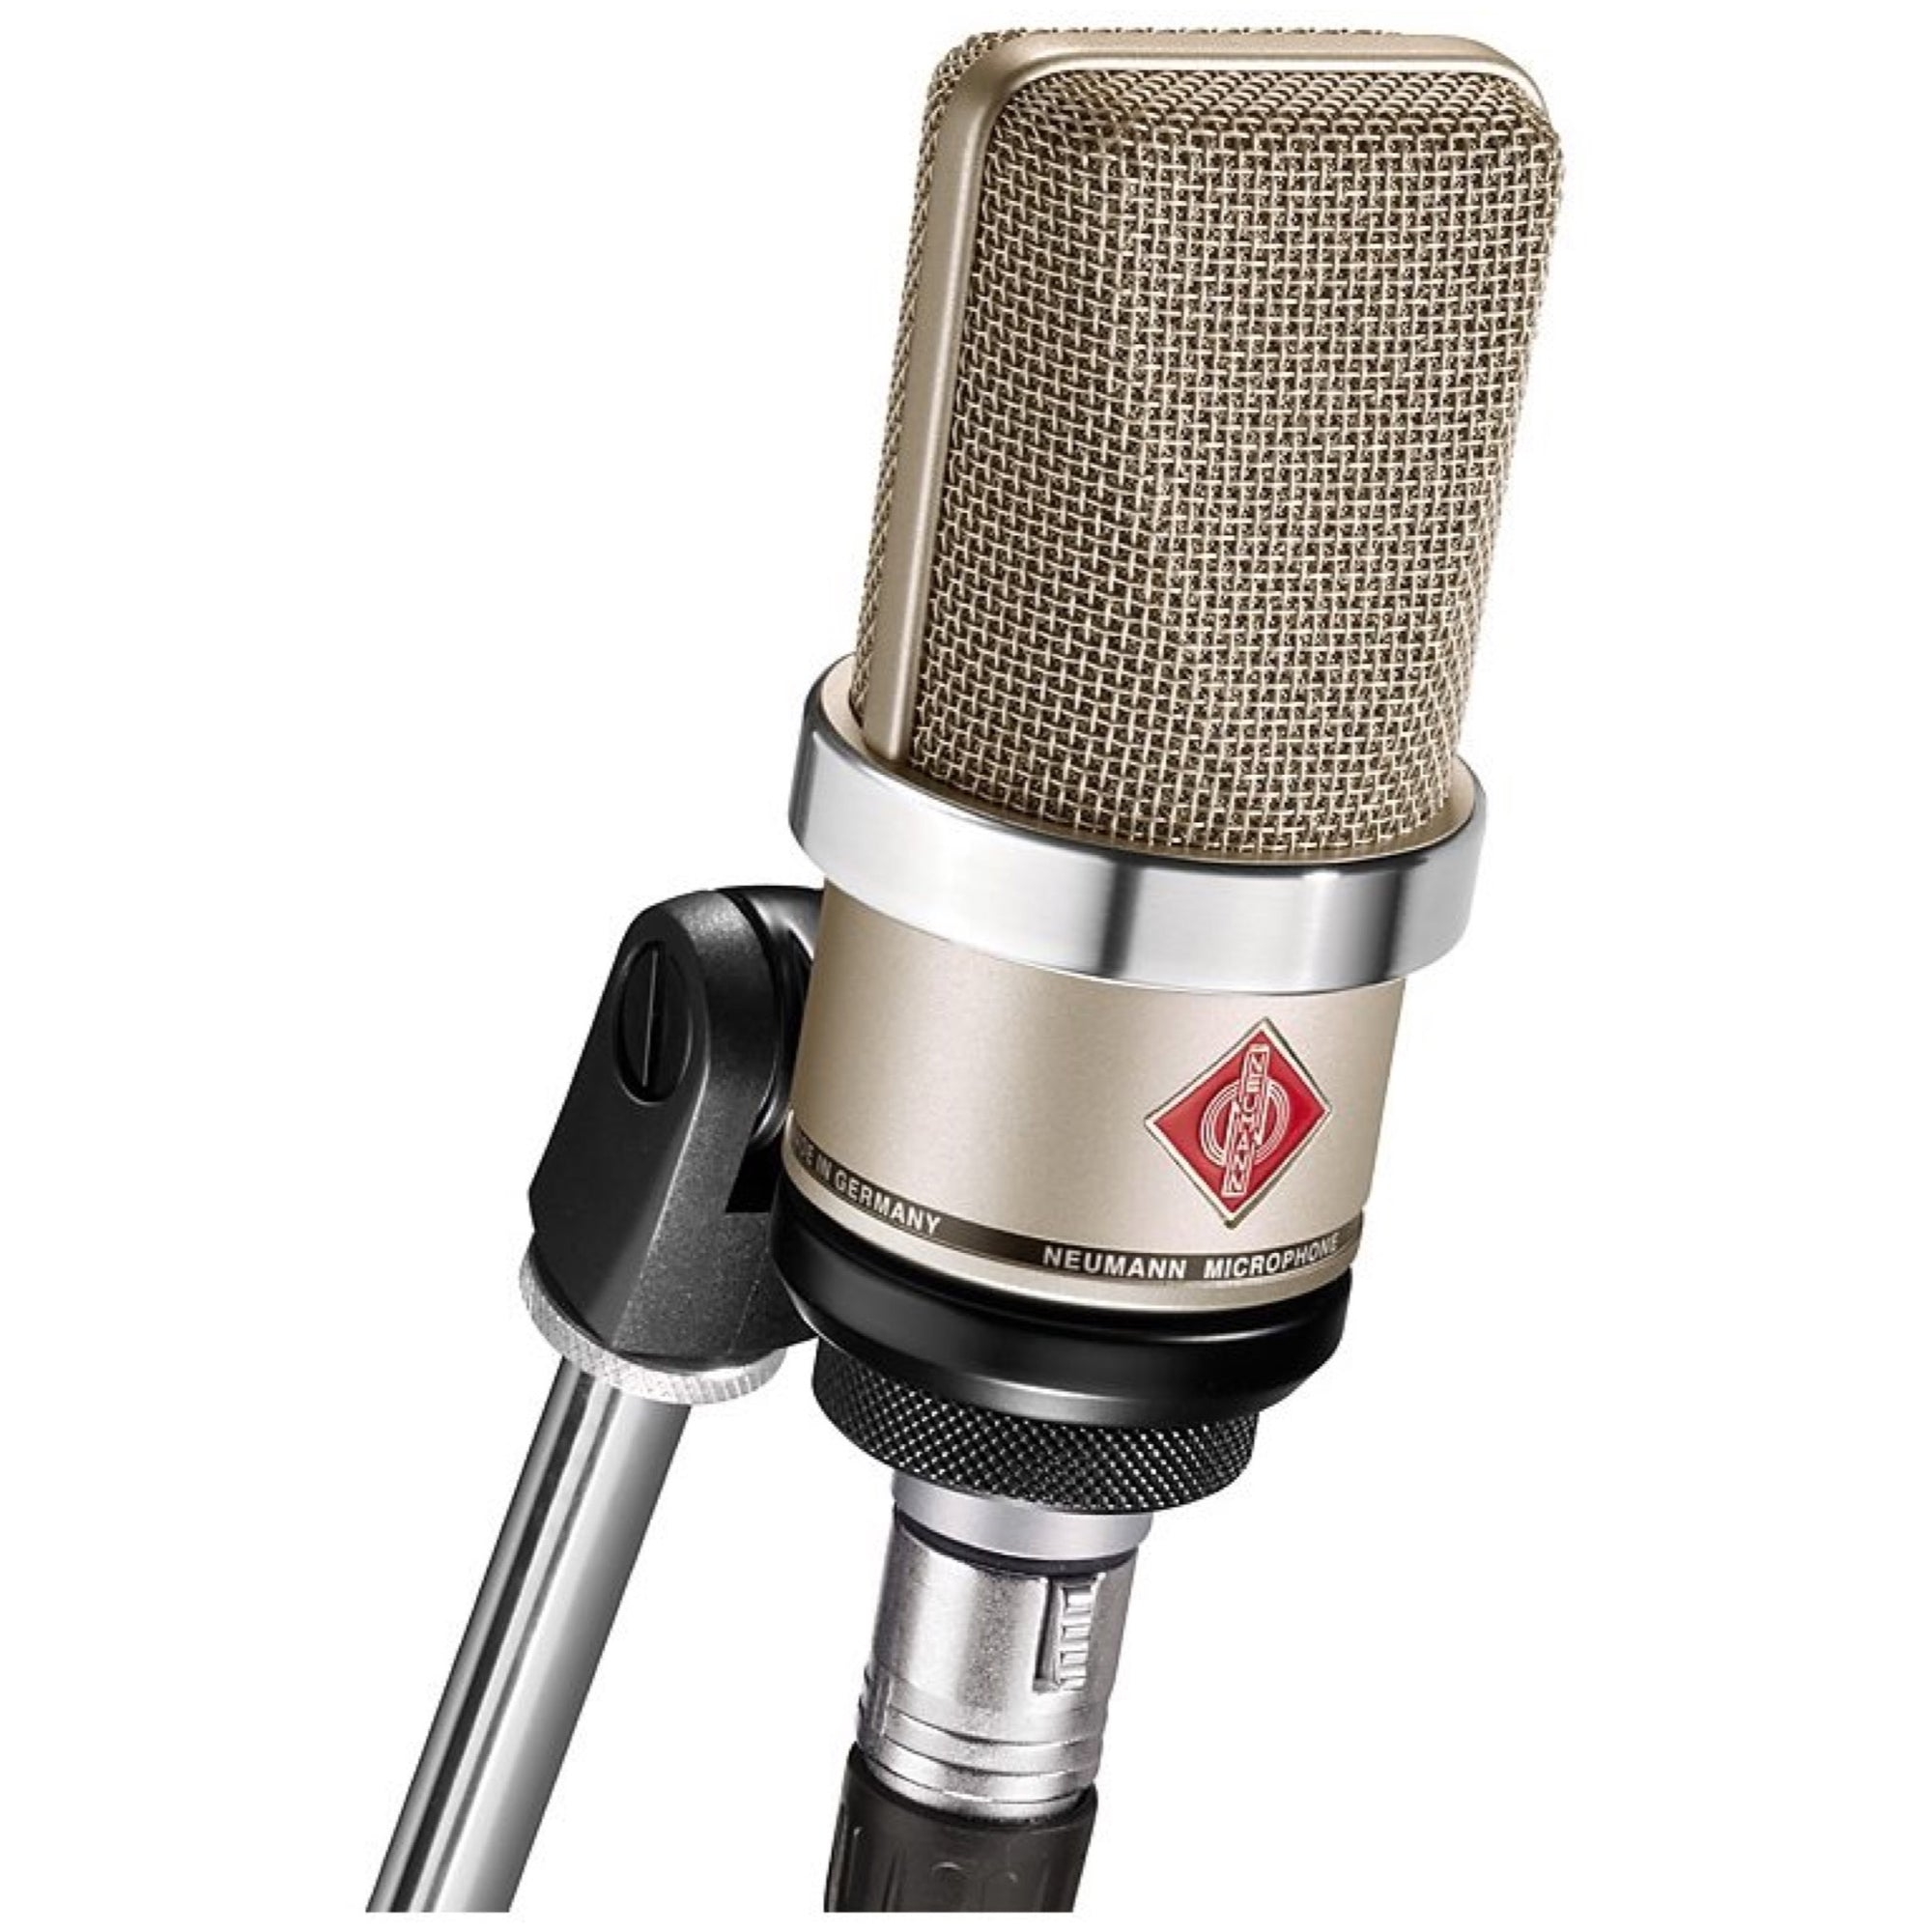 Neumann TLM 102 Studio Microphone, Nickel, with Standmount